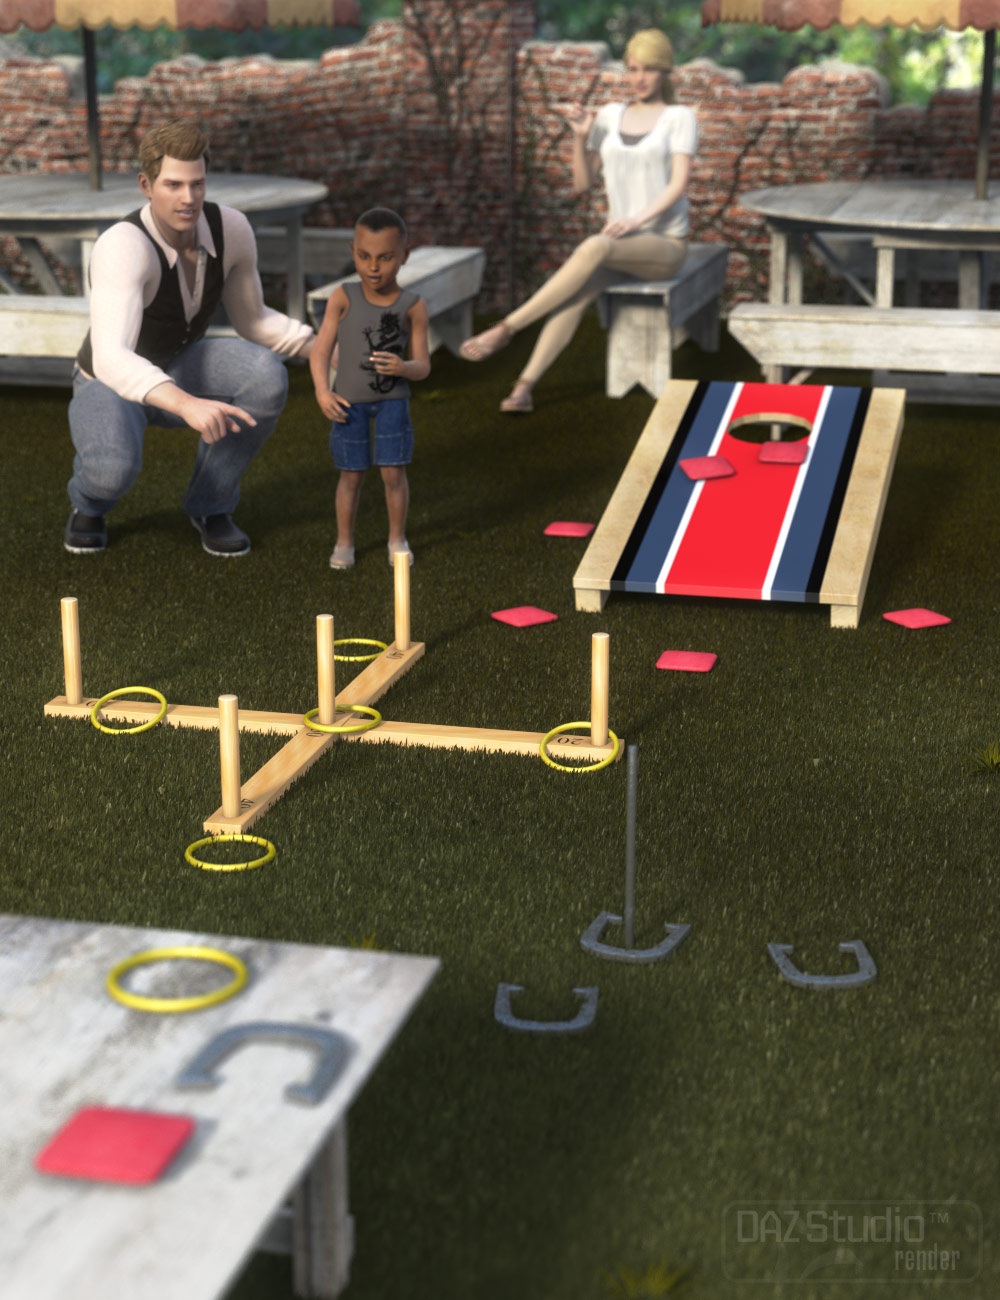 Outdoor Fun Tossing Games by: ARTCollab, 3D Models by Daz 3D